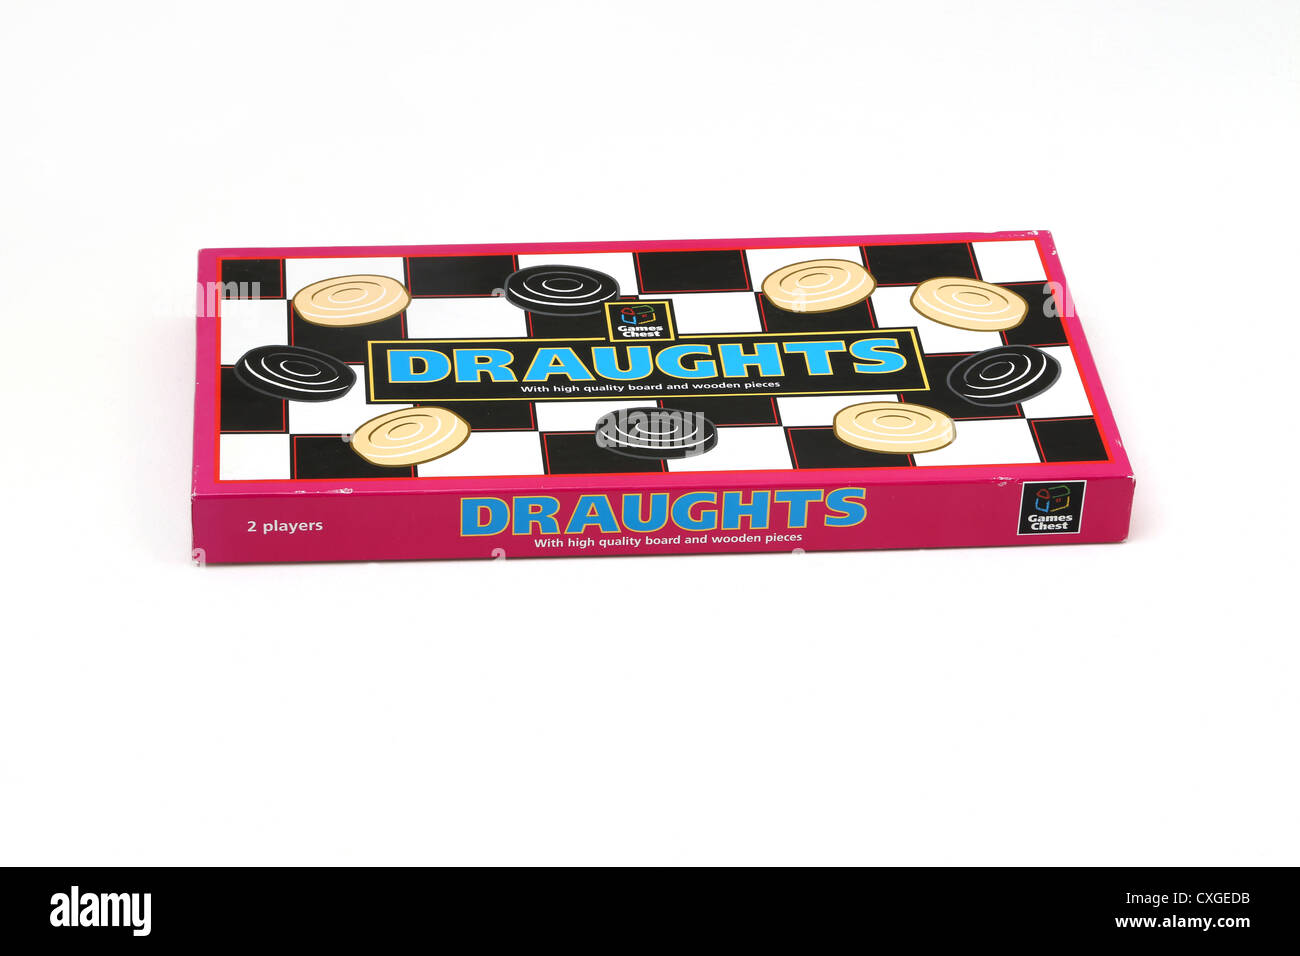 Draughts Board Game - Stock Image